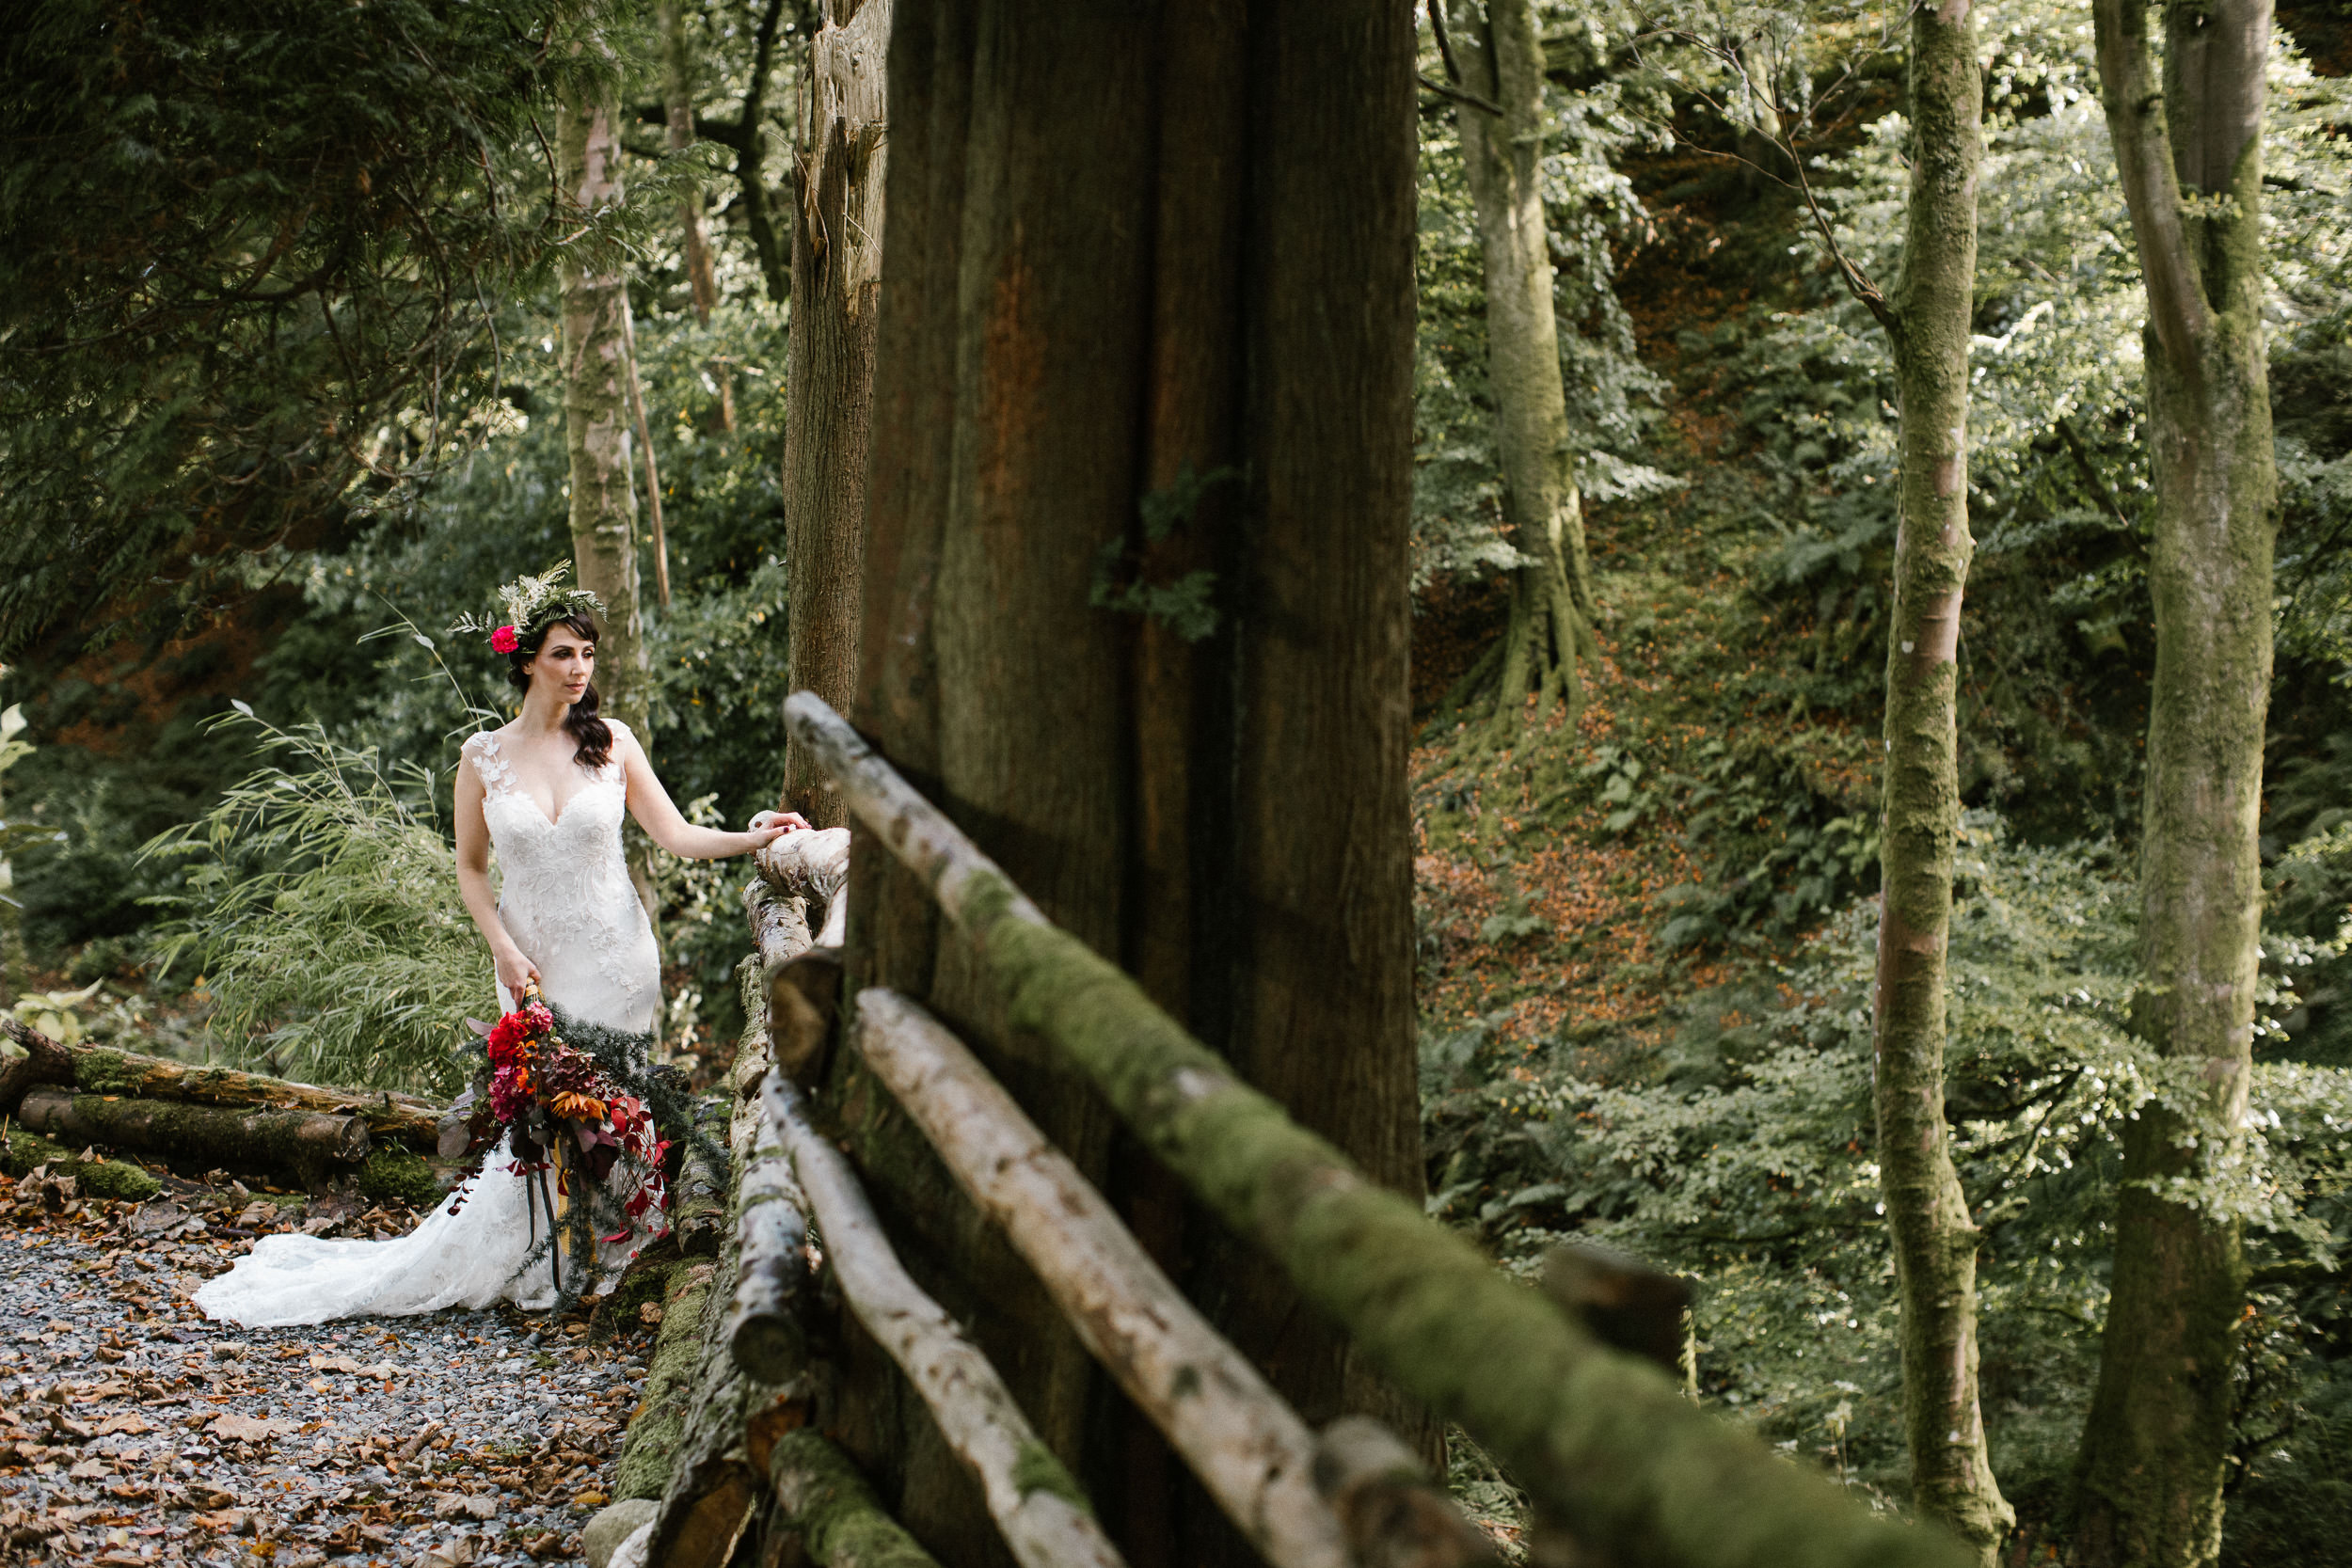 clairebyrnephotography-styled-shoot-huntingbrook-gardens-inspiration-weddings-woods-forest-78.jpg